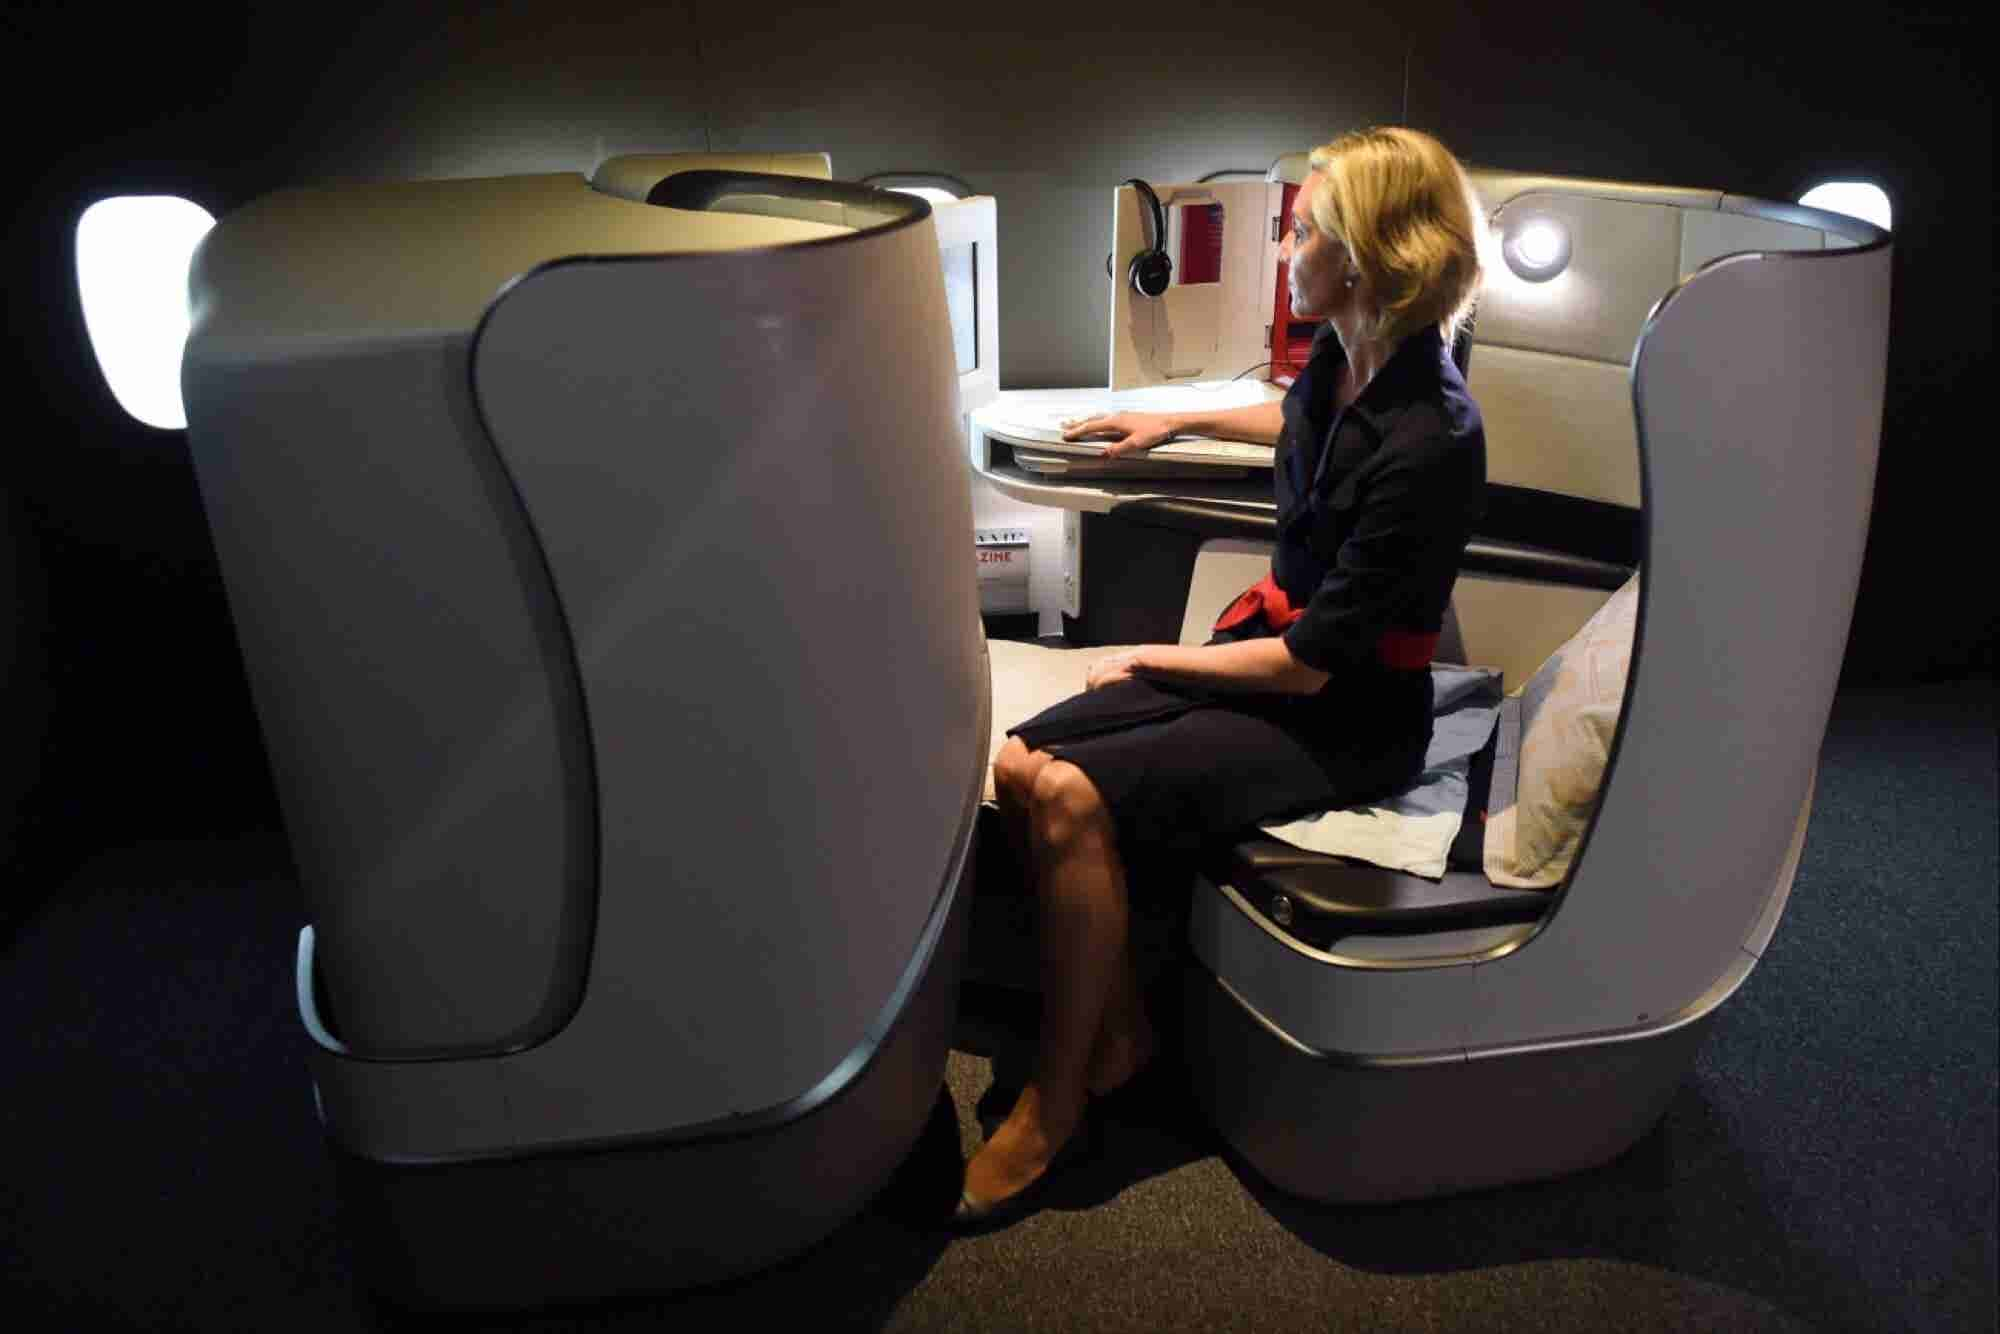 Air France Offers Compromise After Flight Attendants' Outrage at Heads...